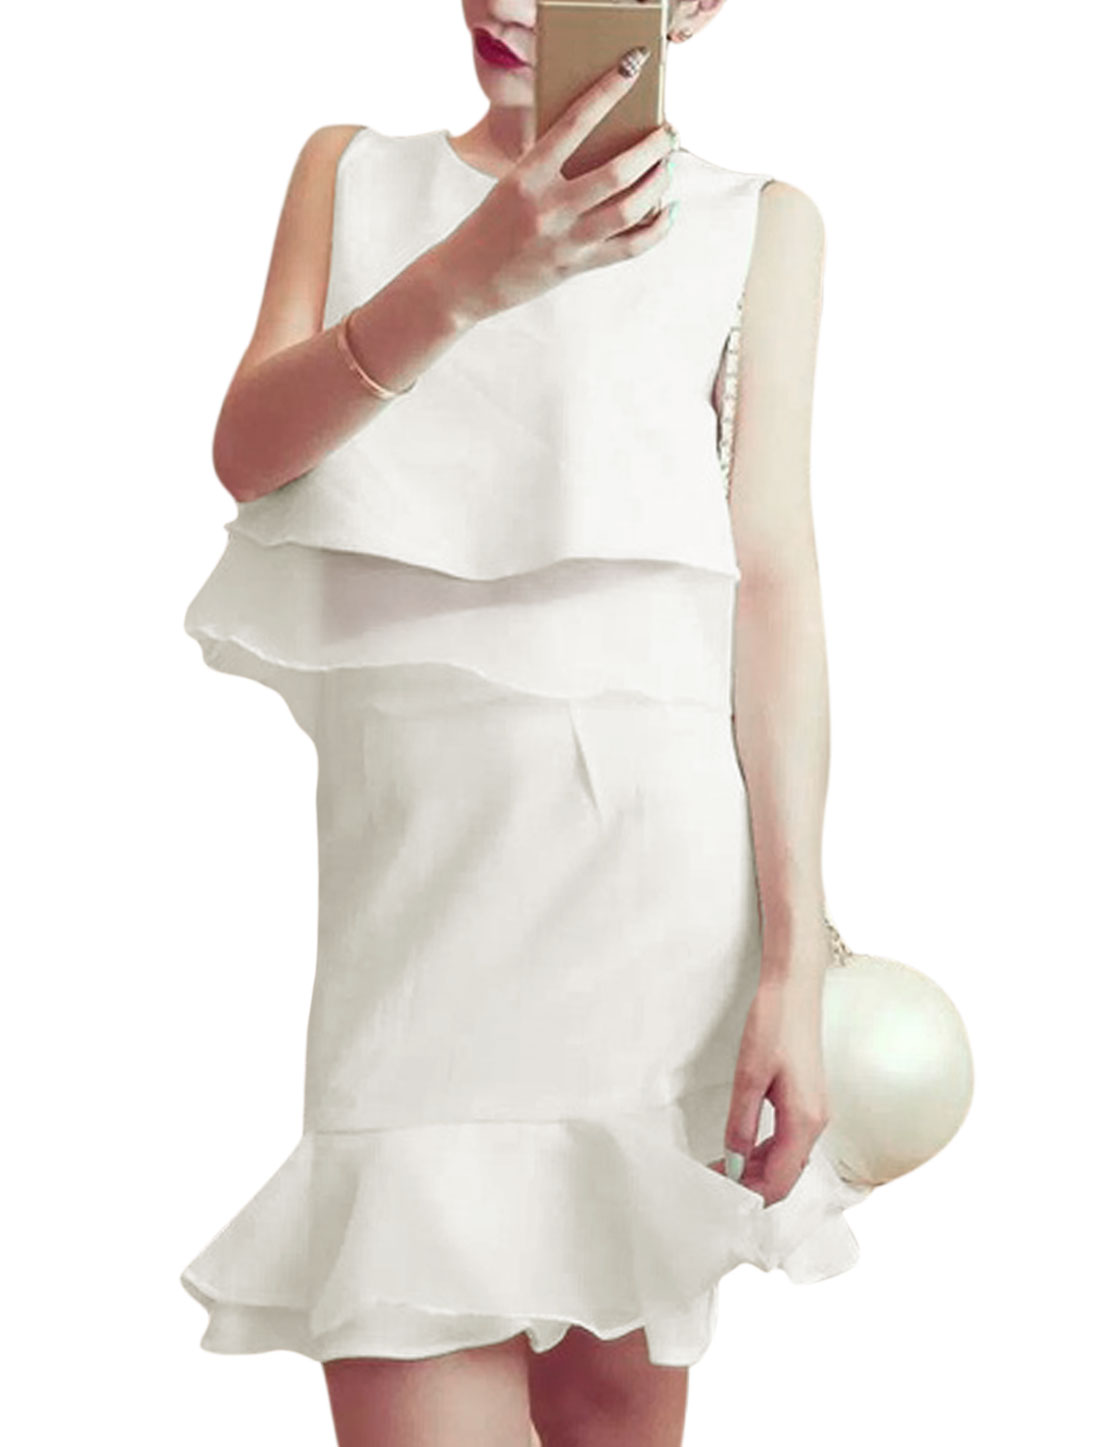 Women Sleeveless Organza Panel Top w Slim Fit Skirt Sets White S